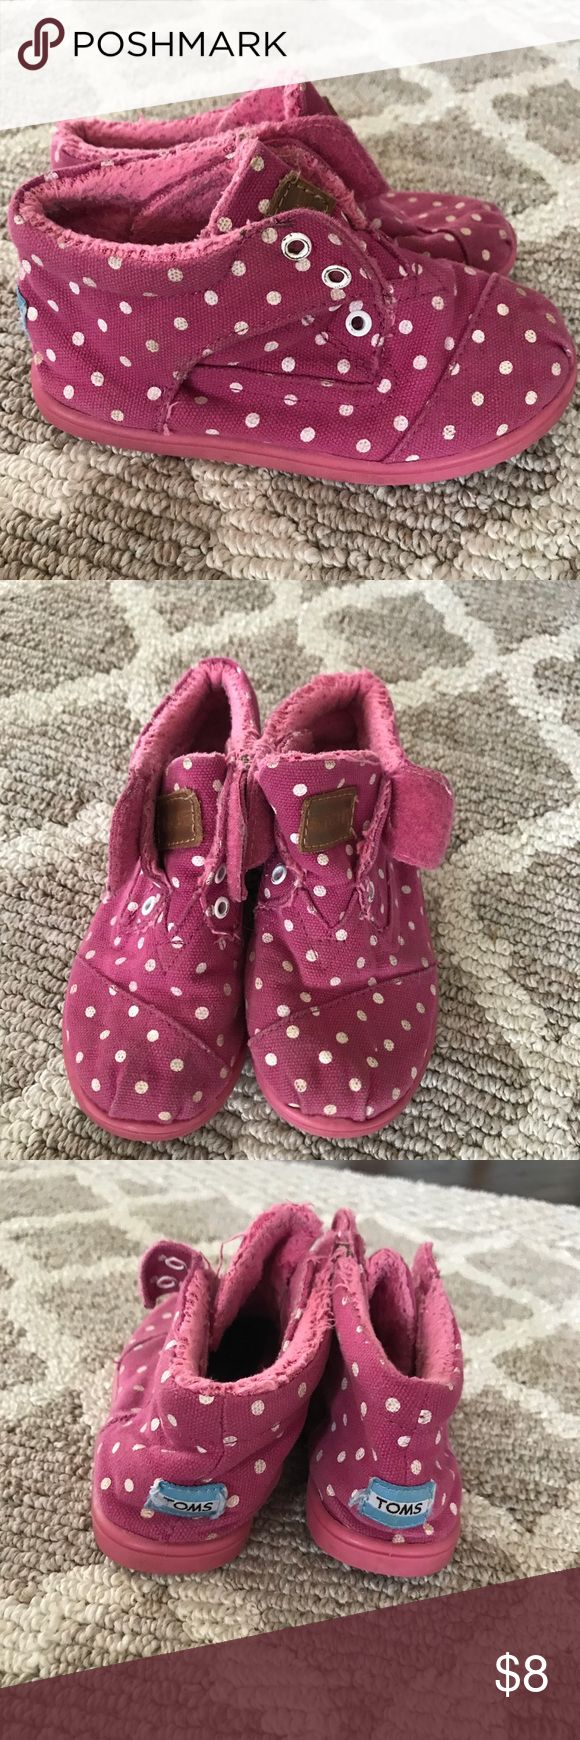 Toms Botas pink Size 10 toddler girls Such CUTE shoes. Comfy and easy to put on. Goes with anything. Good condition. Toms Shoes Boots